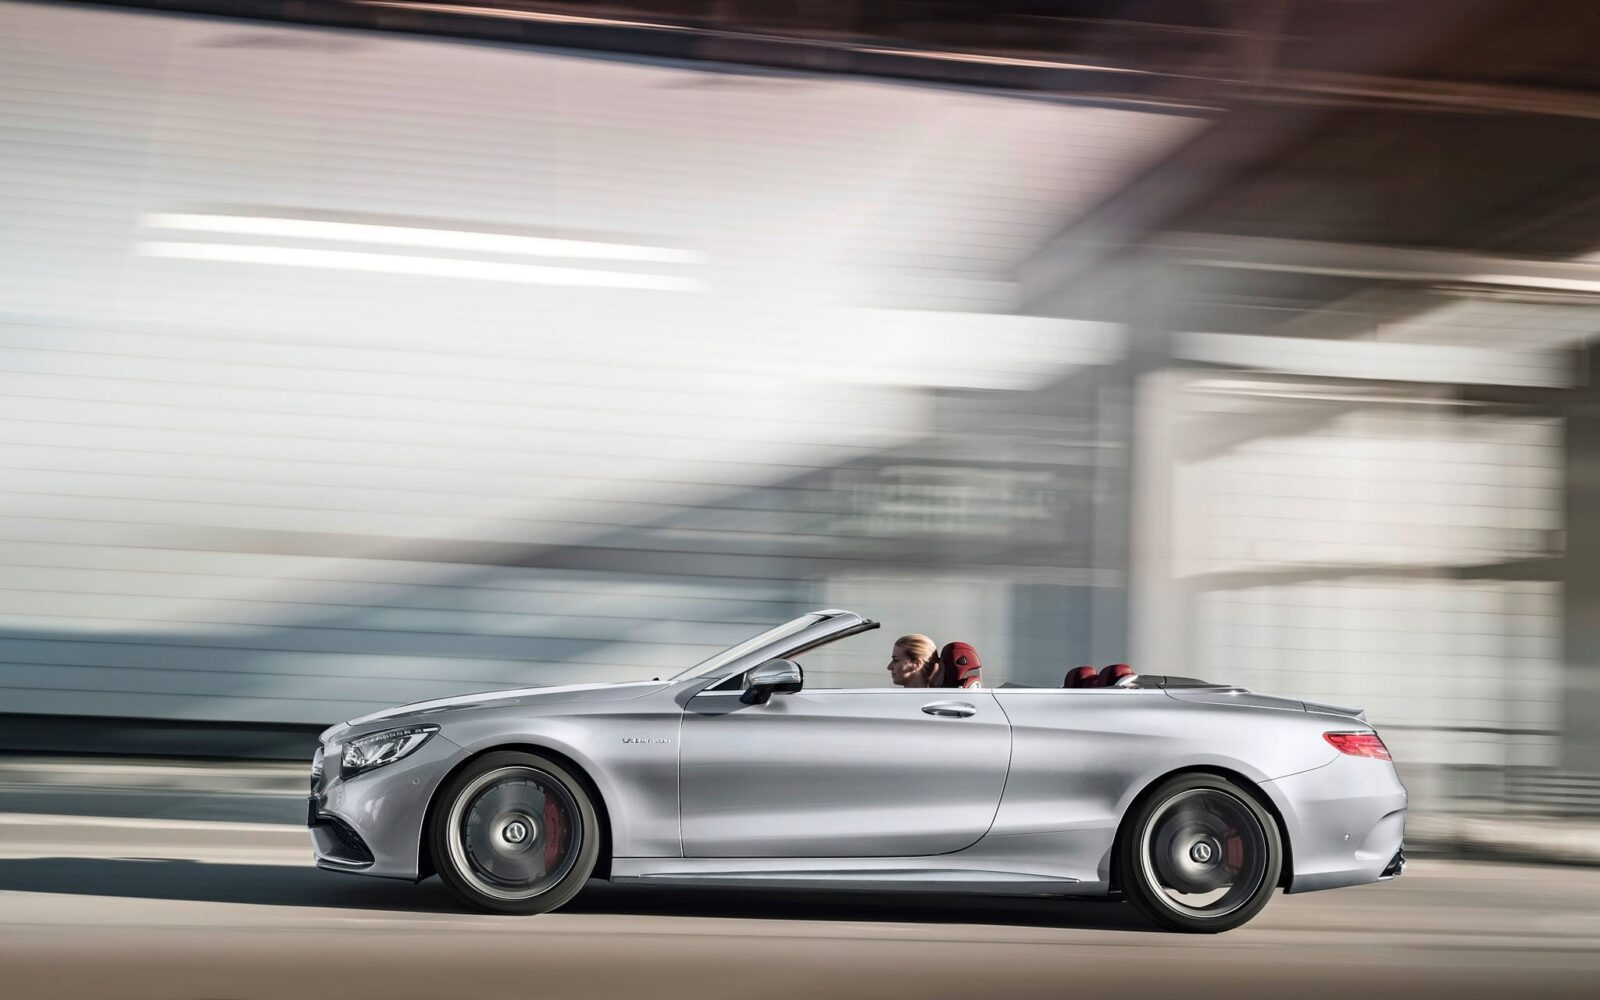 2016 Mercedes-AMG S63 cabriolet HD pic for PC